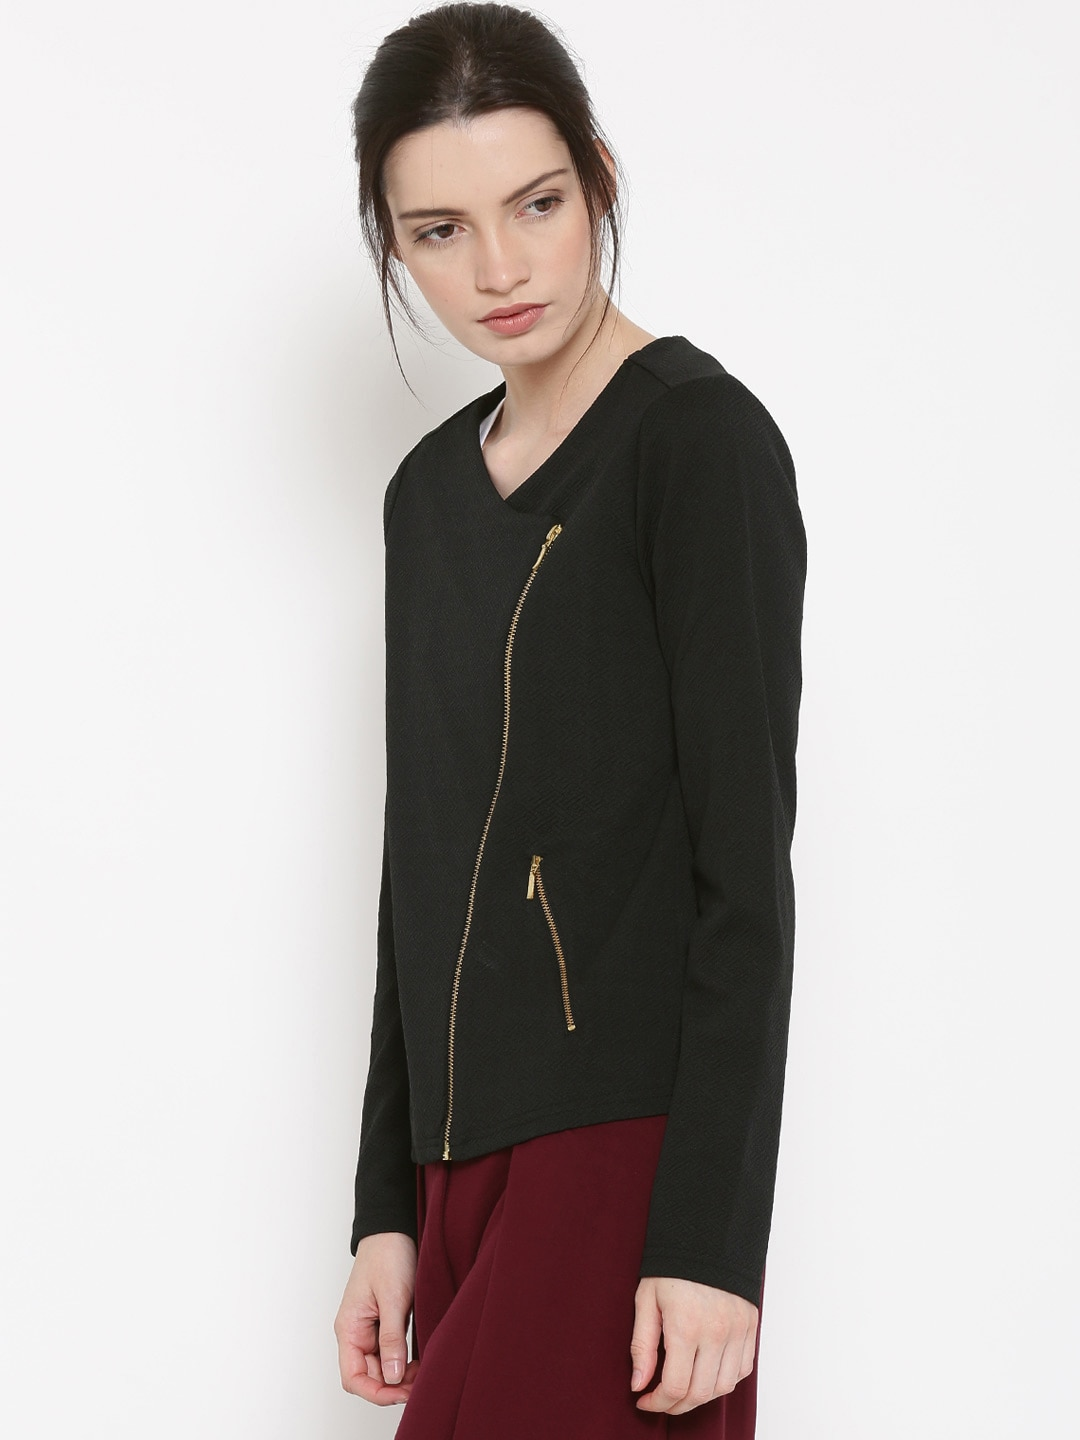 Colorful Jackets For Women Jackets Review